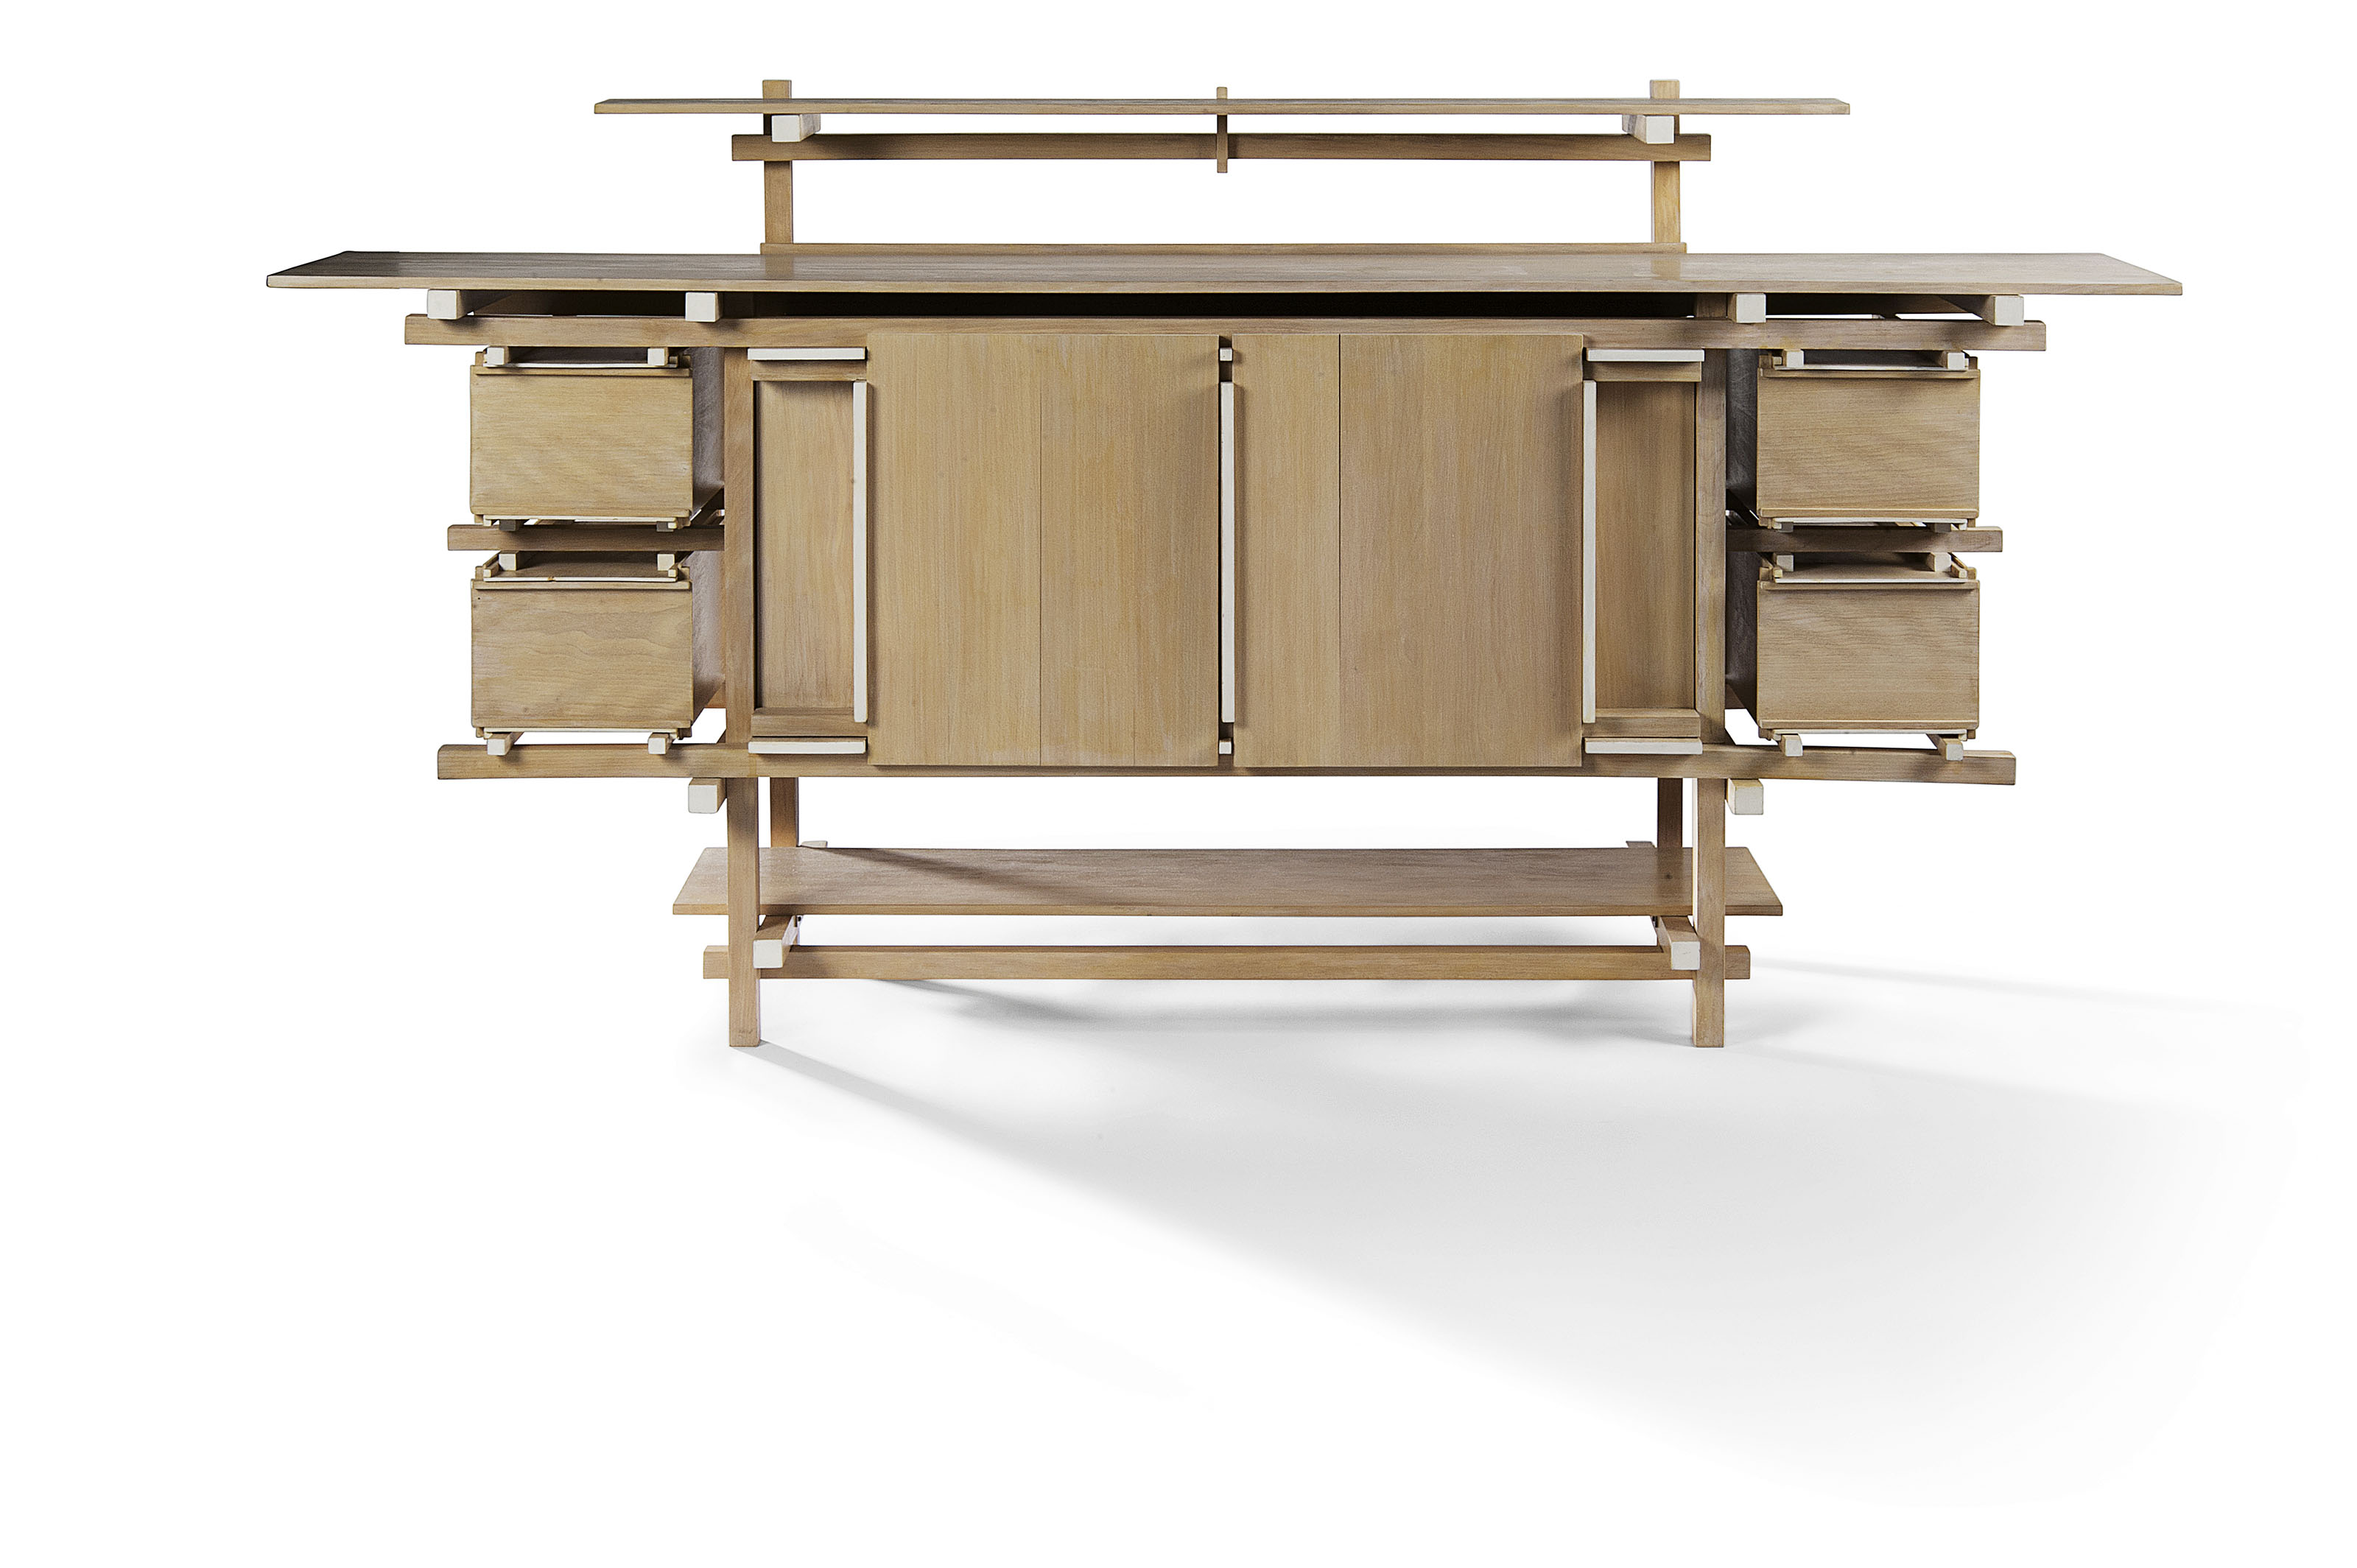 Gerrit Thomas Rietveld (1888-1964), A rare Elling sideboard. 41 x 78¾ x 17¾  in (104 x 200 x 45  cm). Estimate £60,000-90,000. This lot is offered in Masterpieces of Design & Photography on 3 October 2017  at Christie's in London